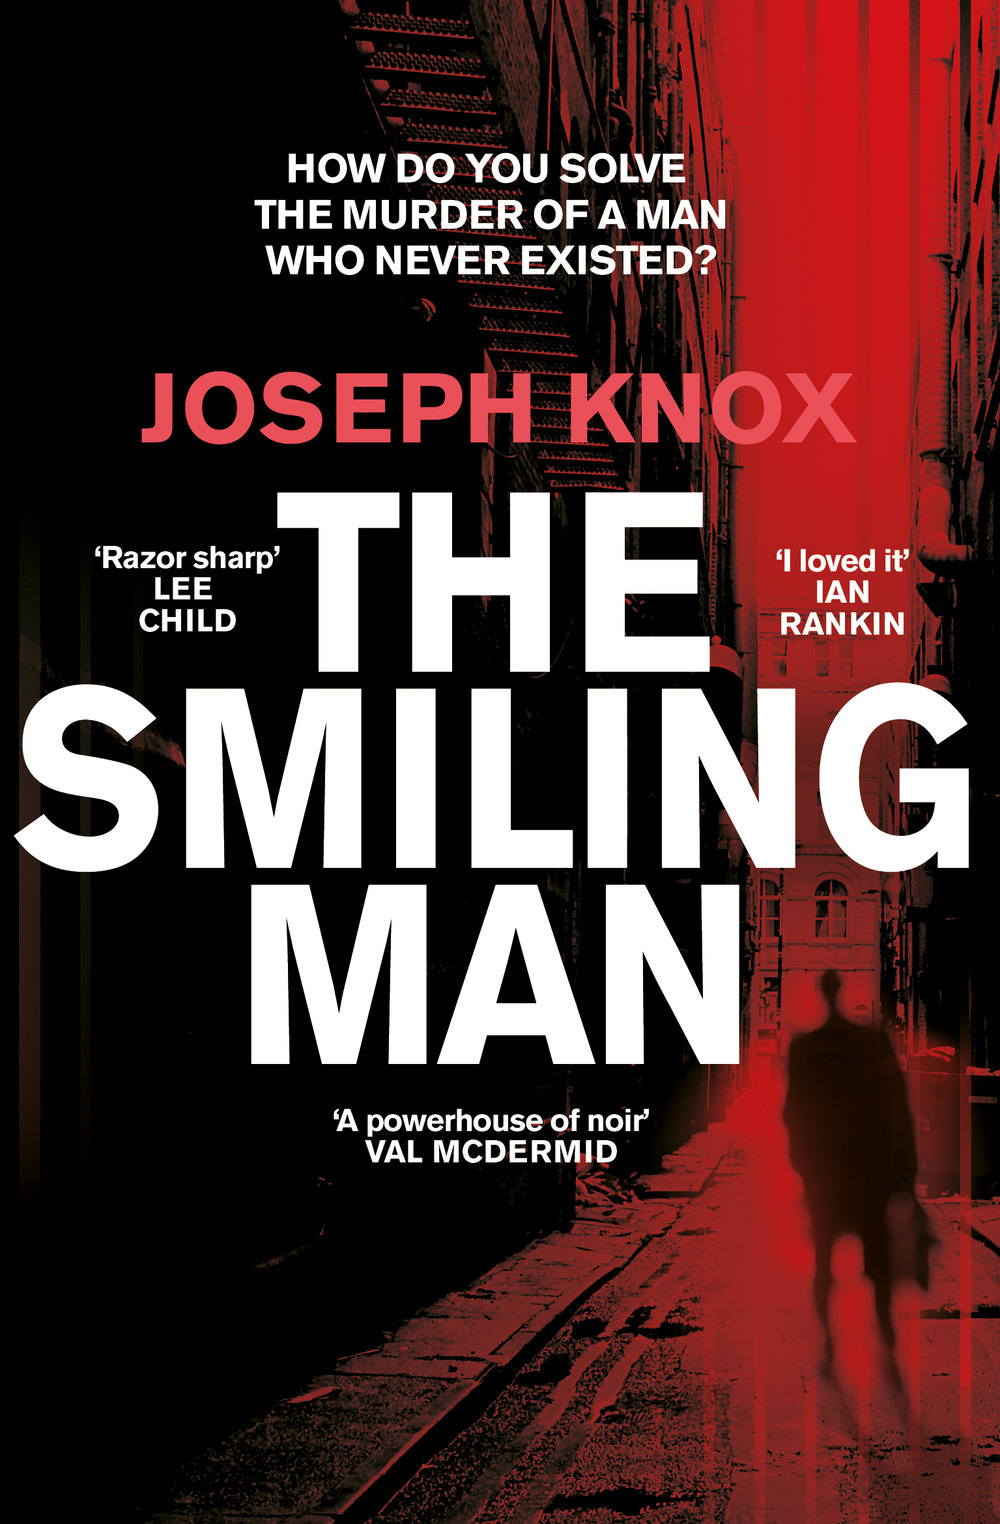 Knox - The Smiling Man pbk cover final.jpg